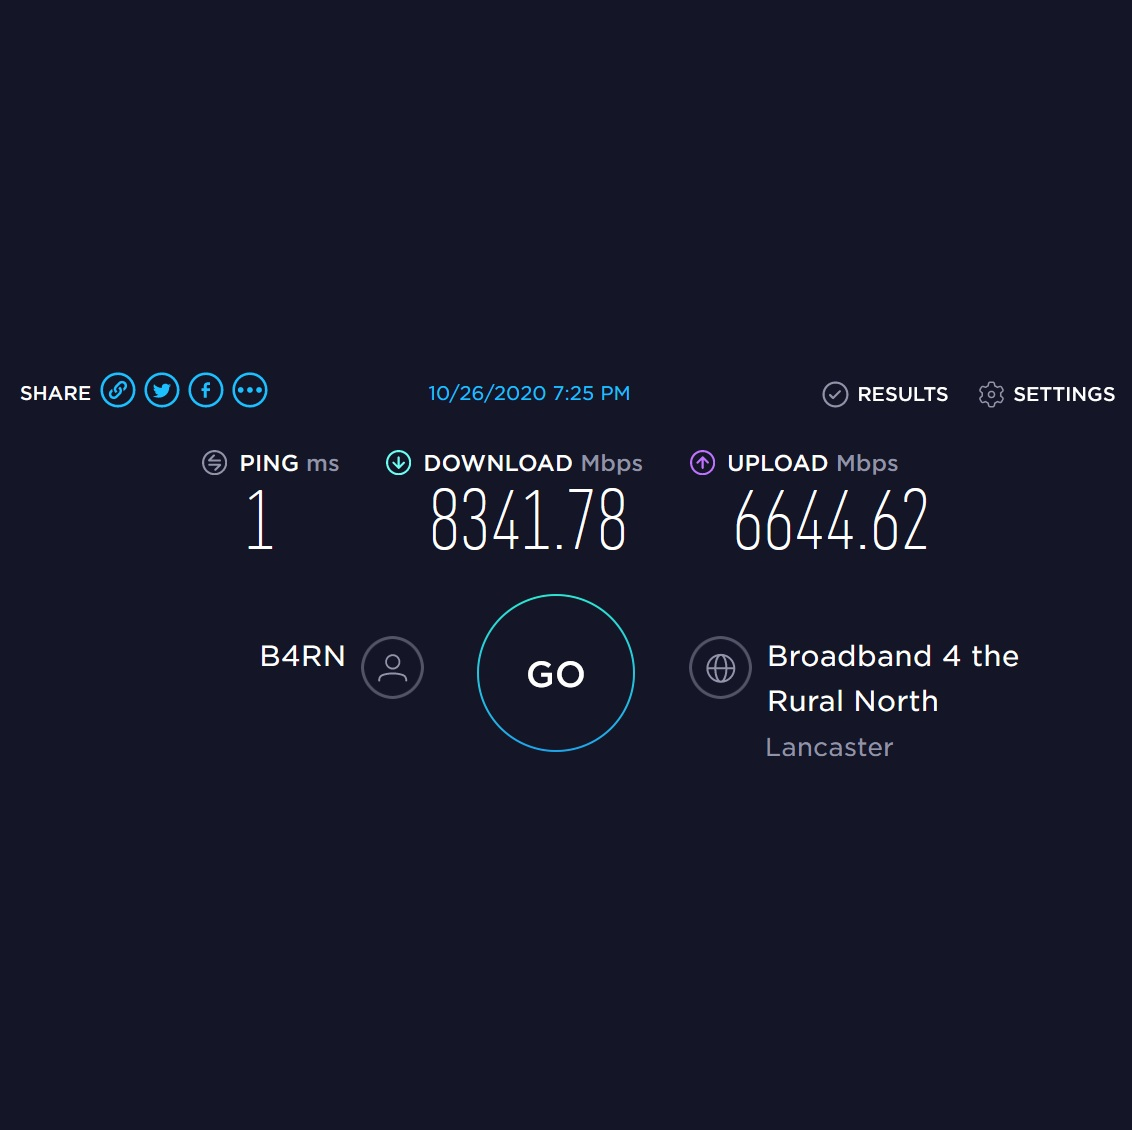 B4RN_10gbps_speedtest